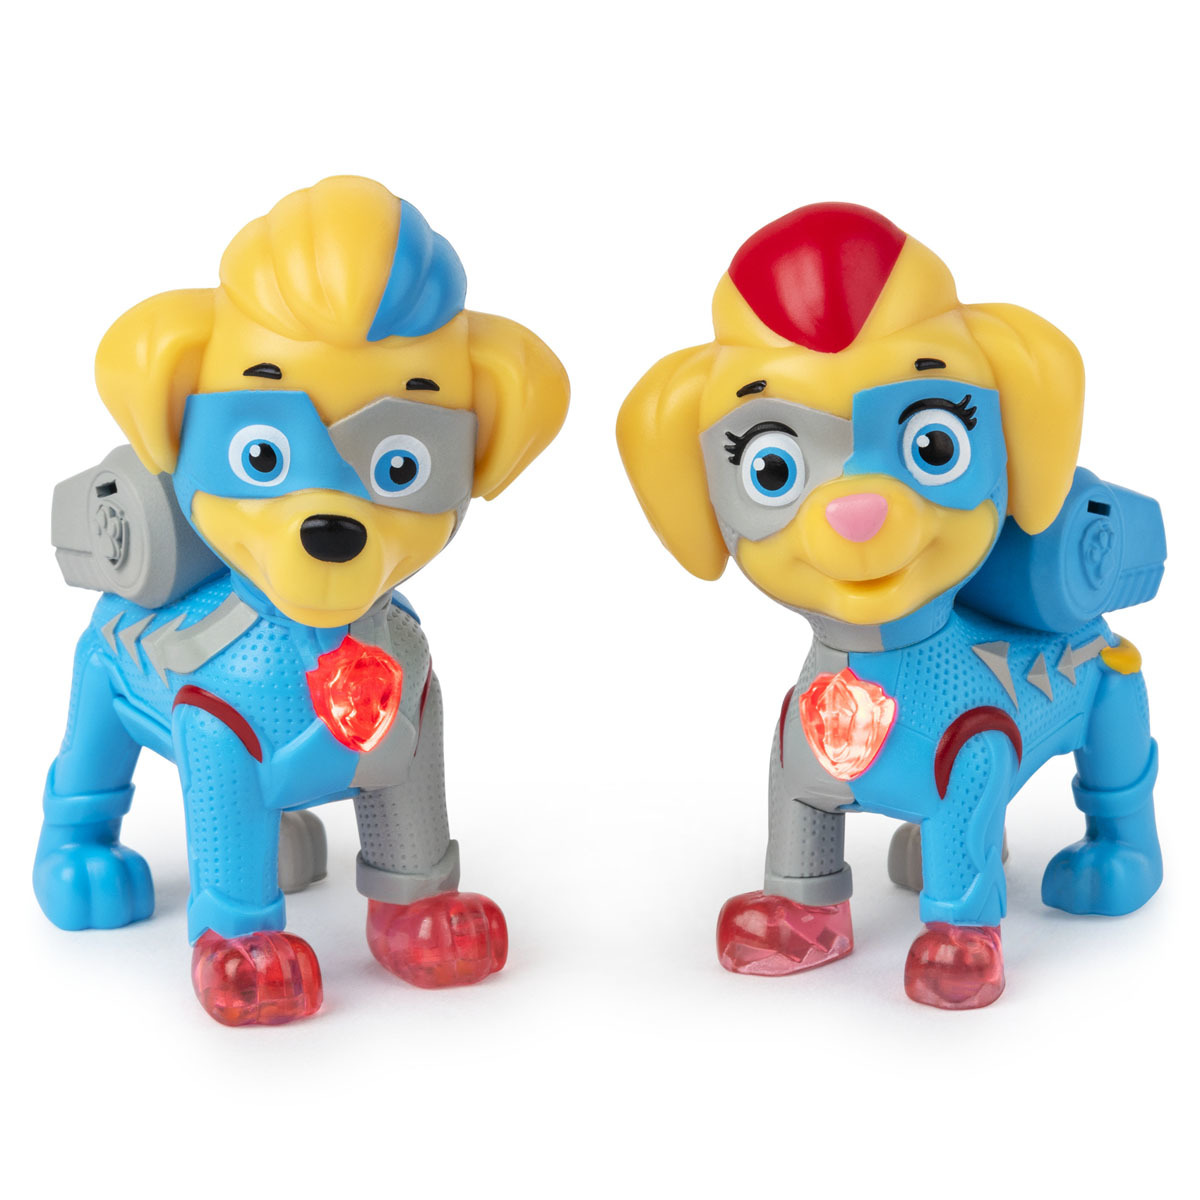 Paw Patrol Mighty Pups Super Paws Light-Up Mighty Twins Figures from Early Learning Center